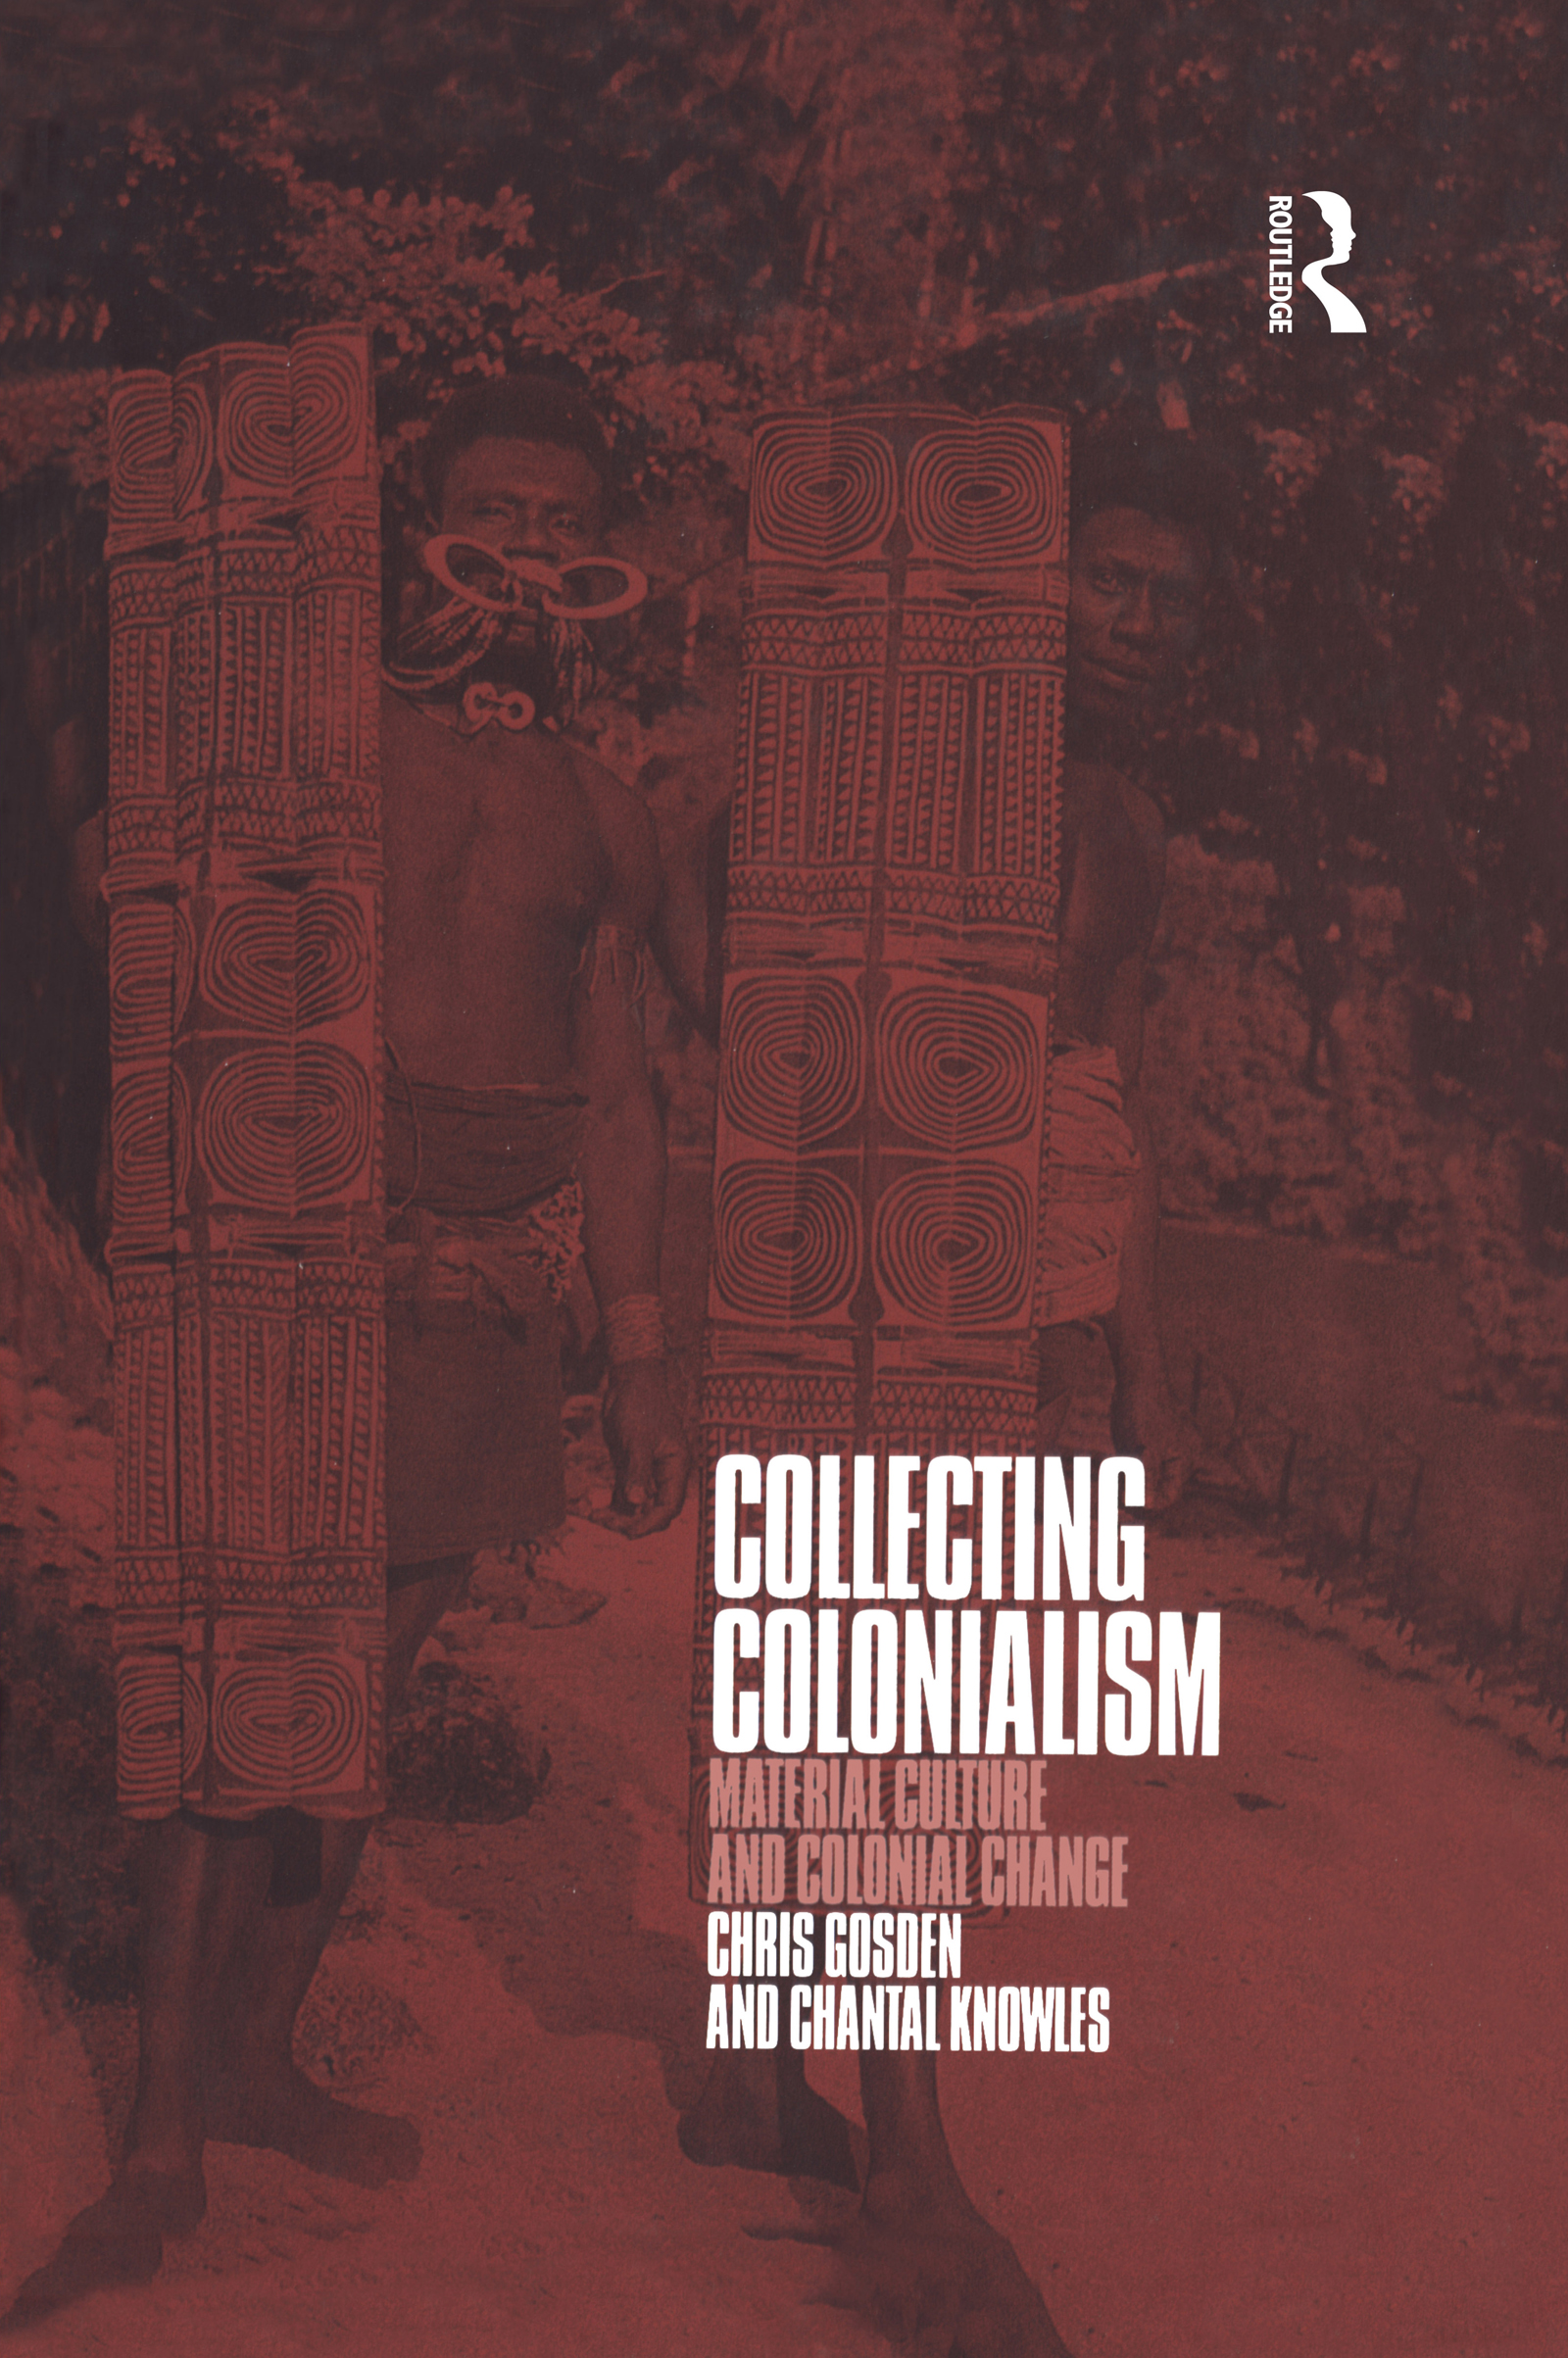 Collecting Colonialism